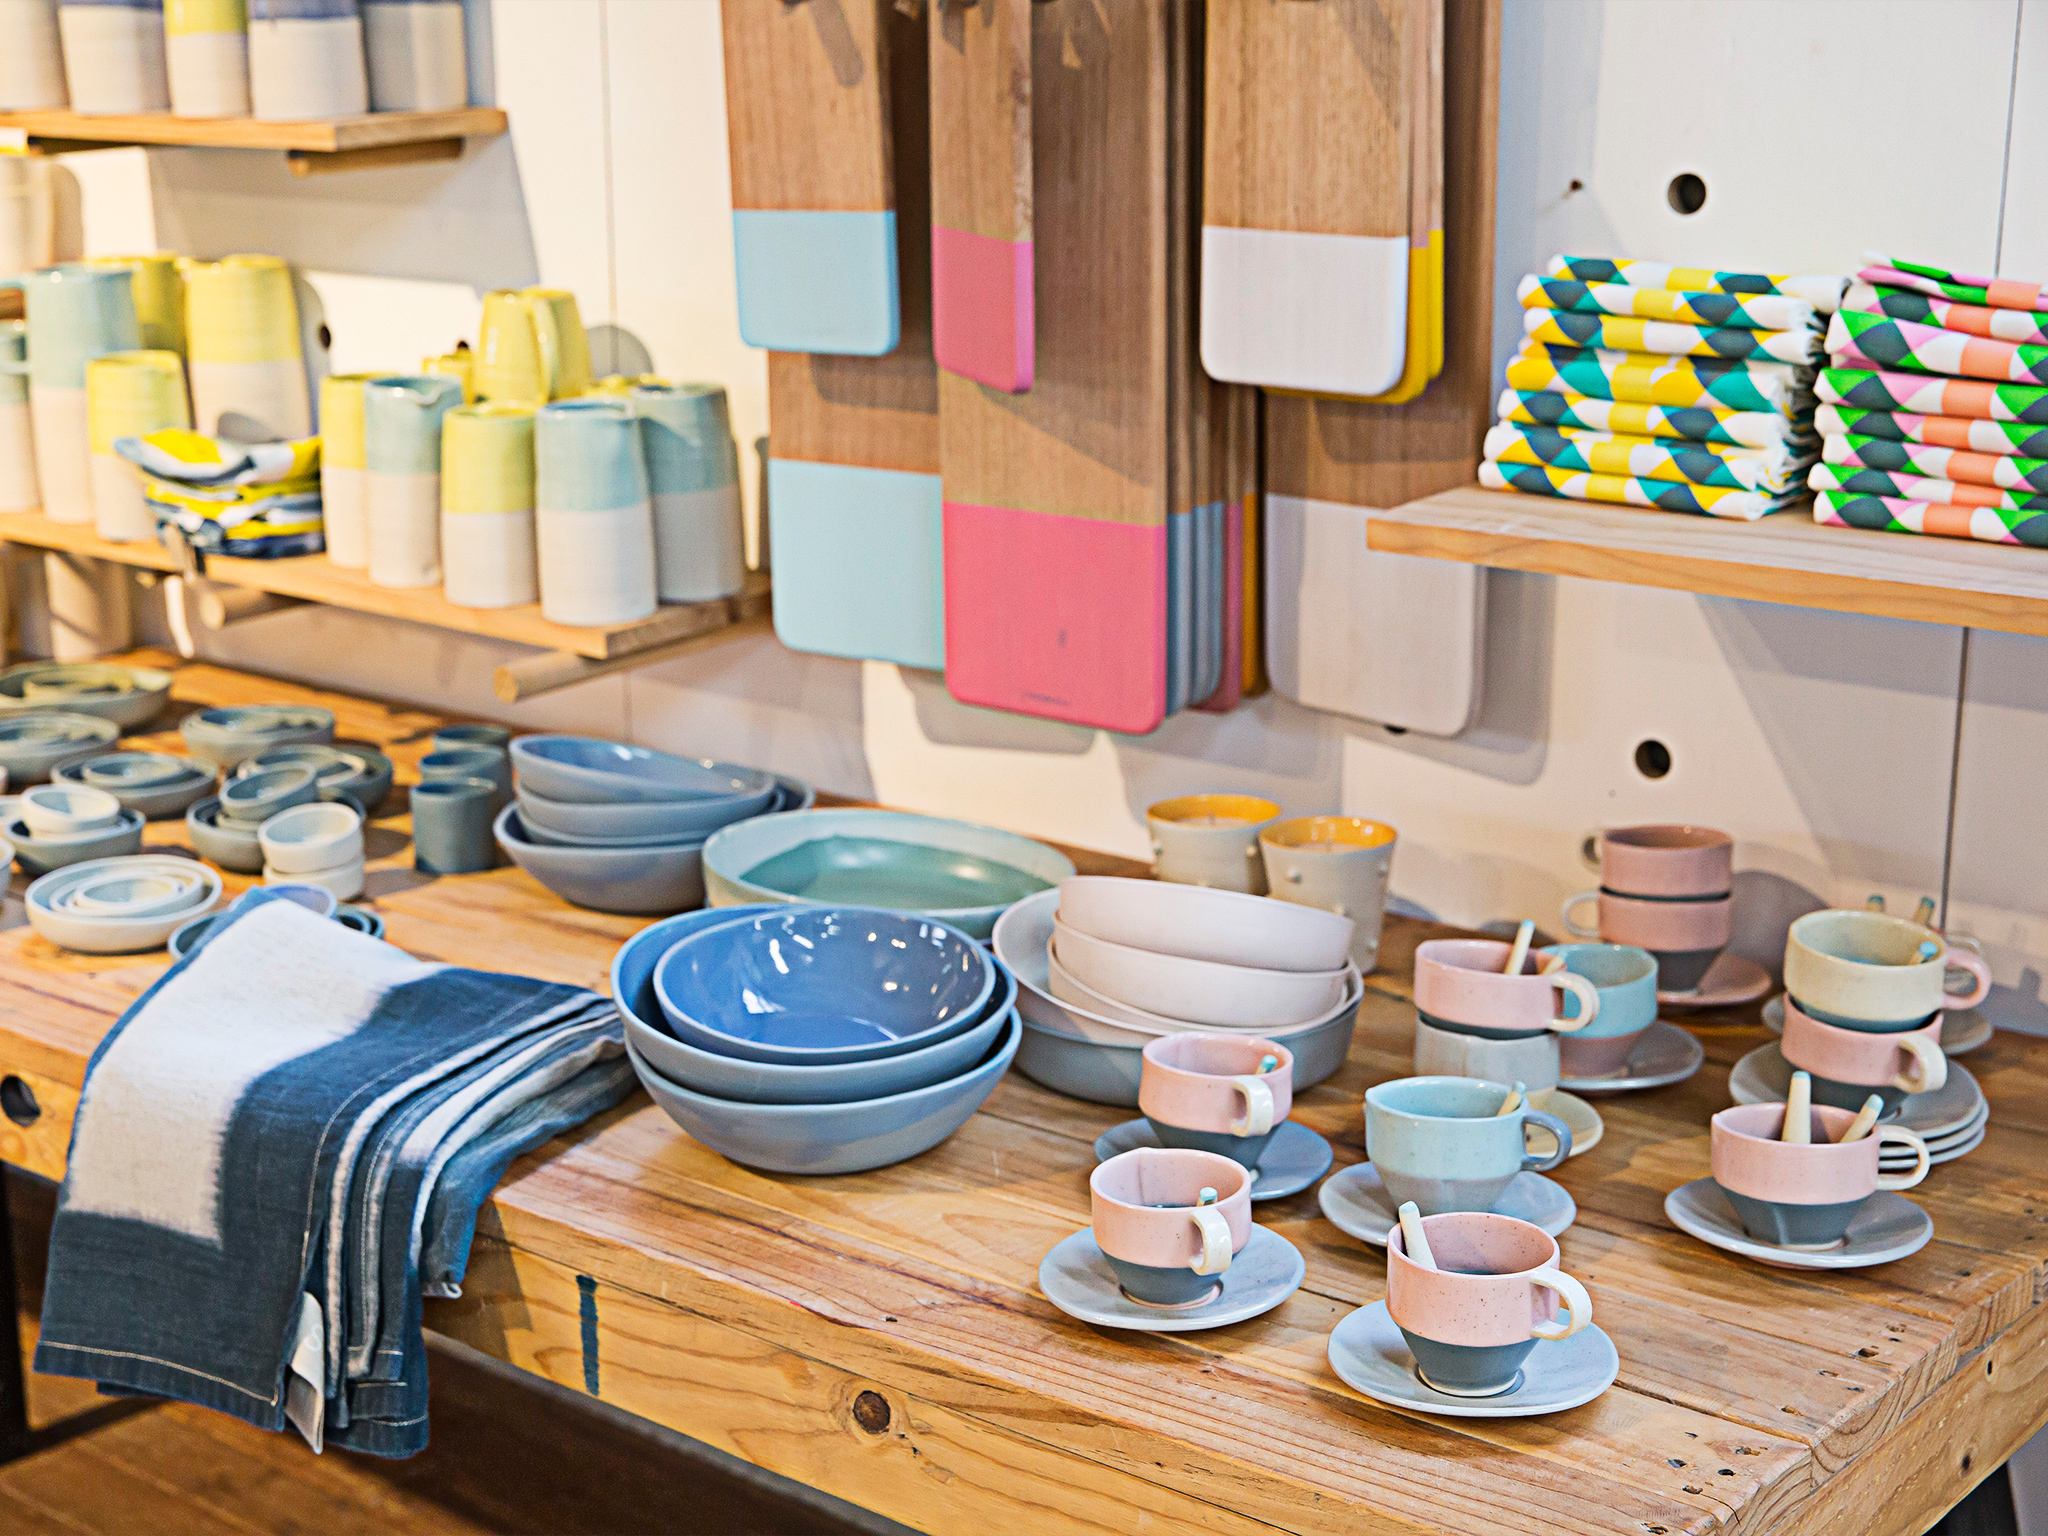 The best design and interiors shops in London we share our edit of the best independent design shops the capital has to offer lighting and homeware from their delightful East London shop.